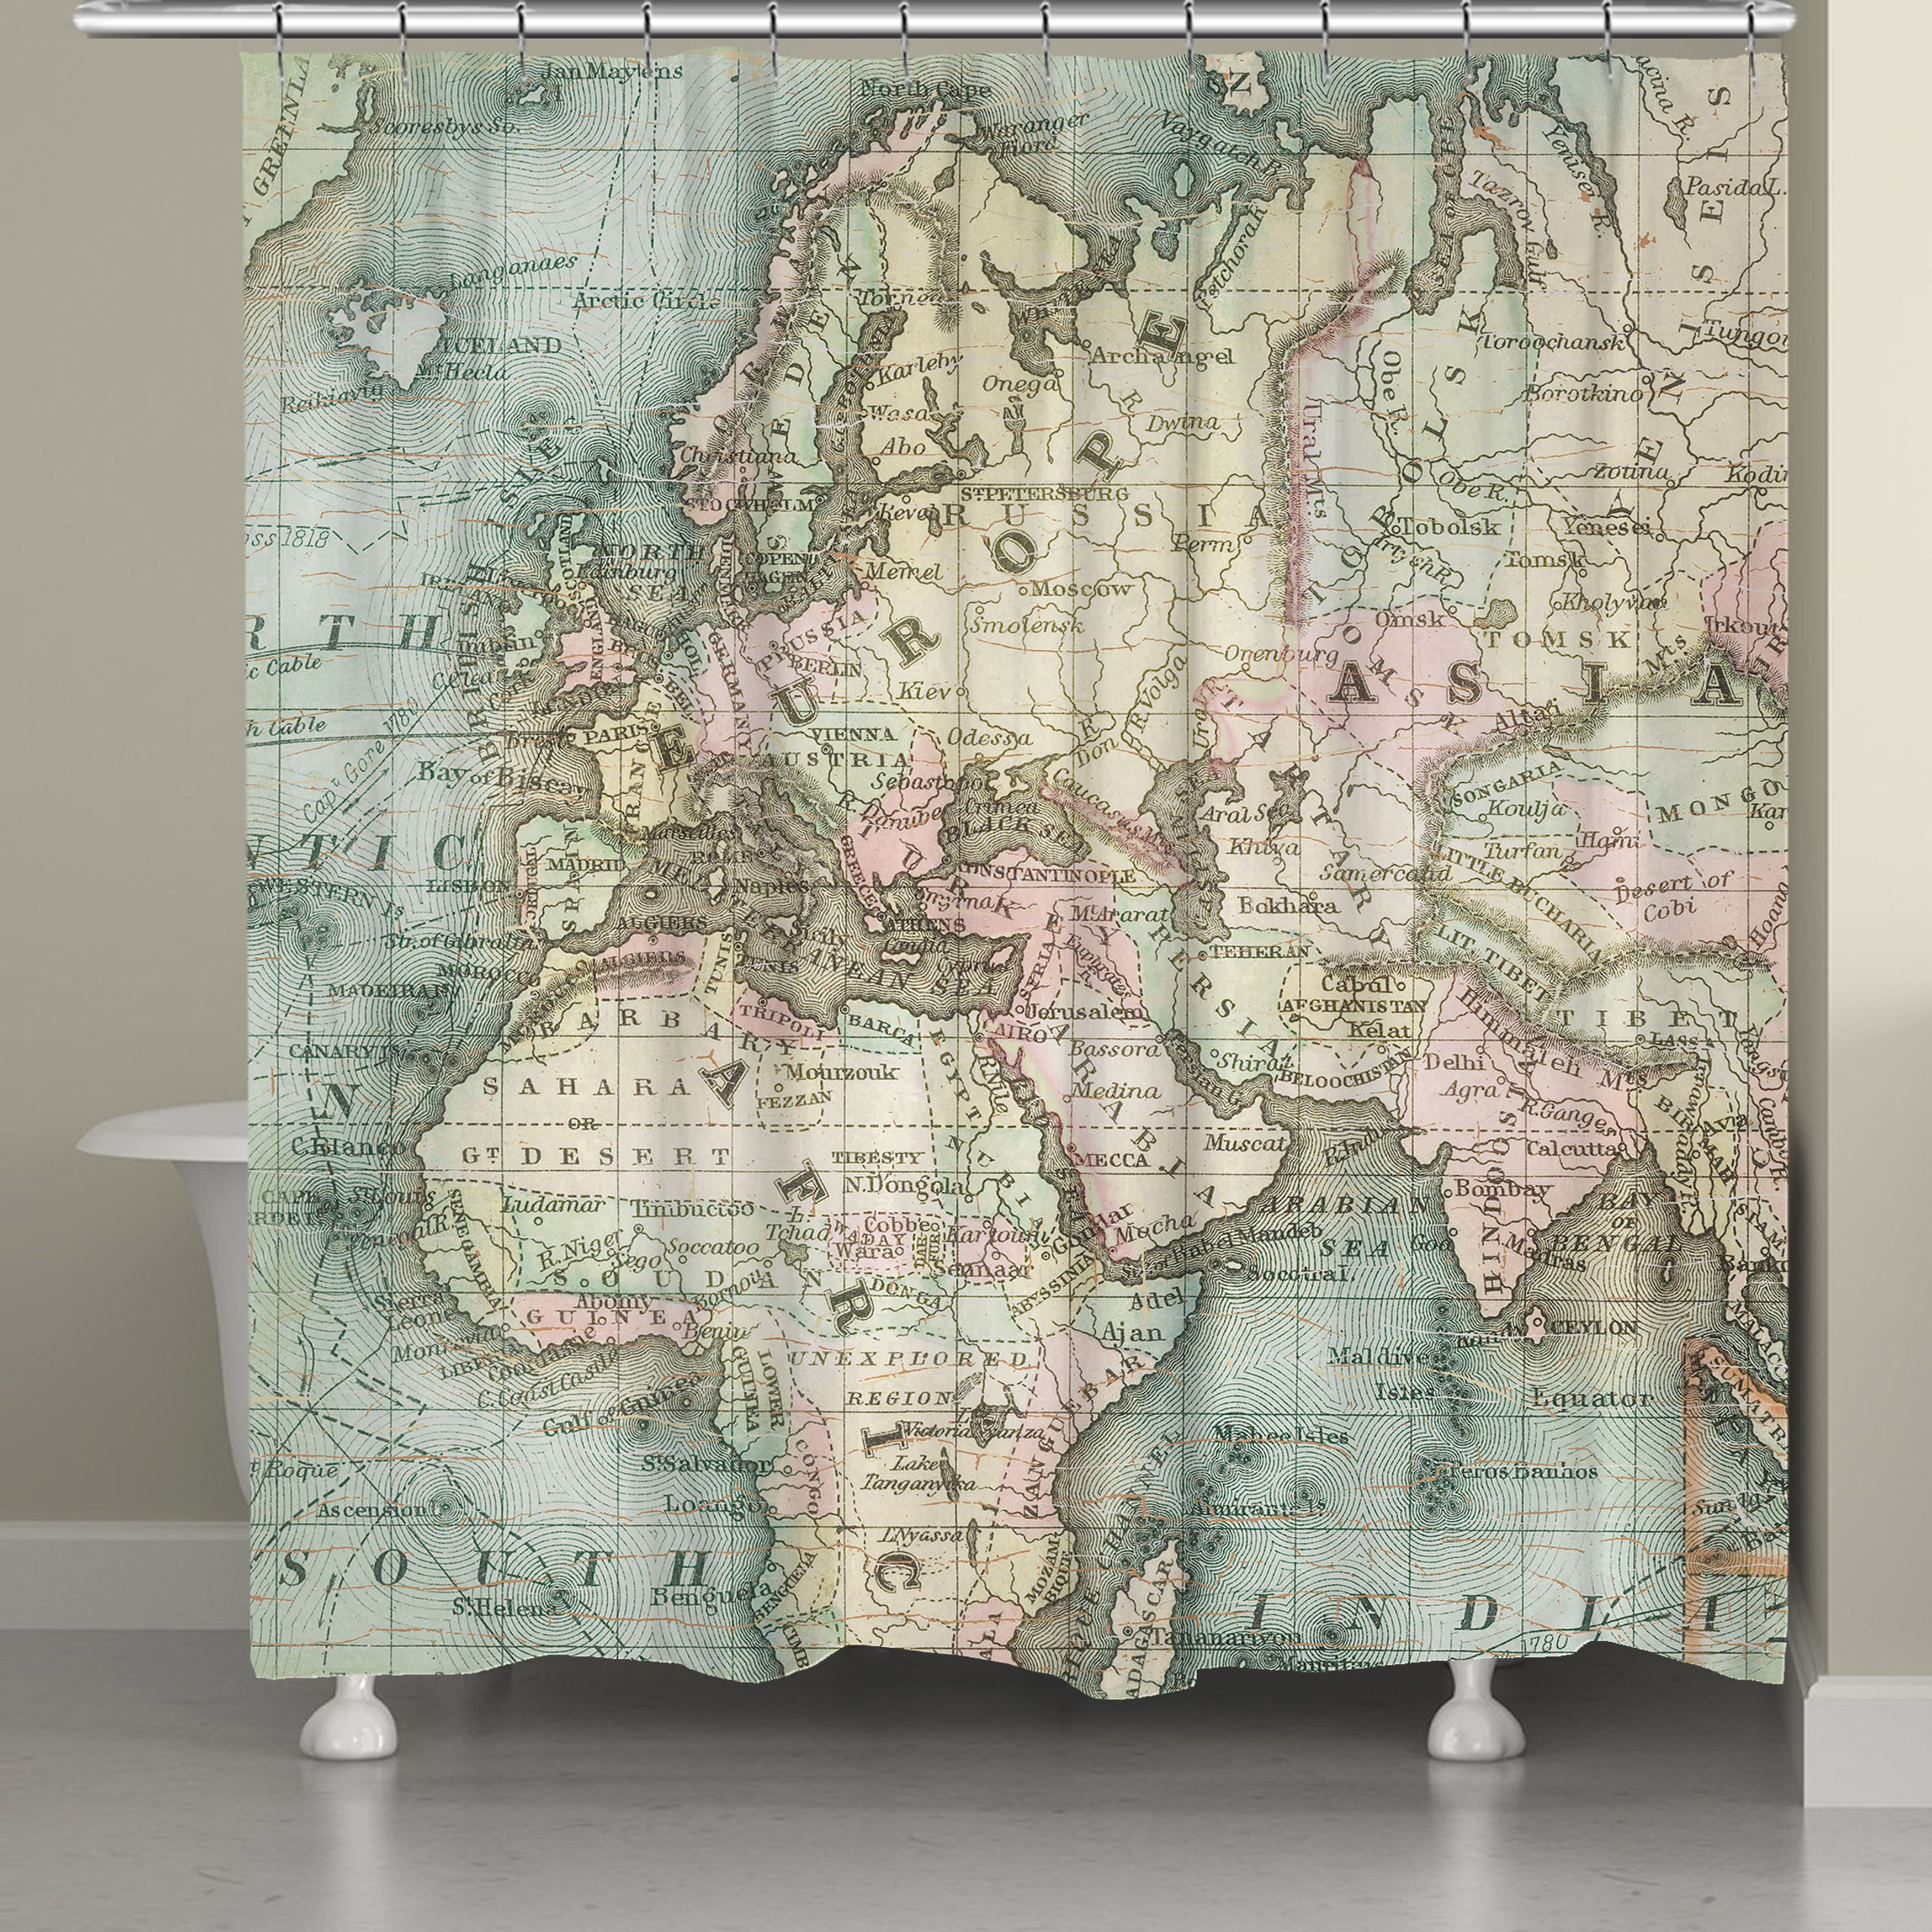 The Soft Colors On The Vintage Map Shower Curtain By Laural Home